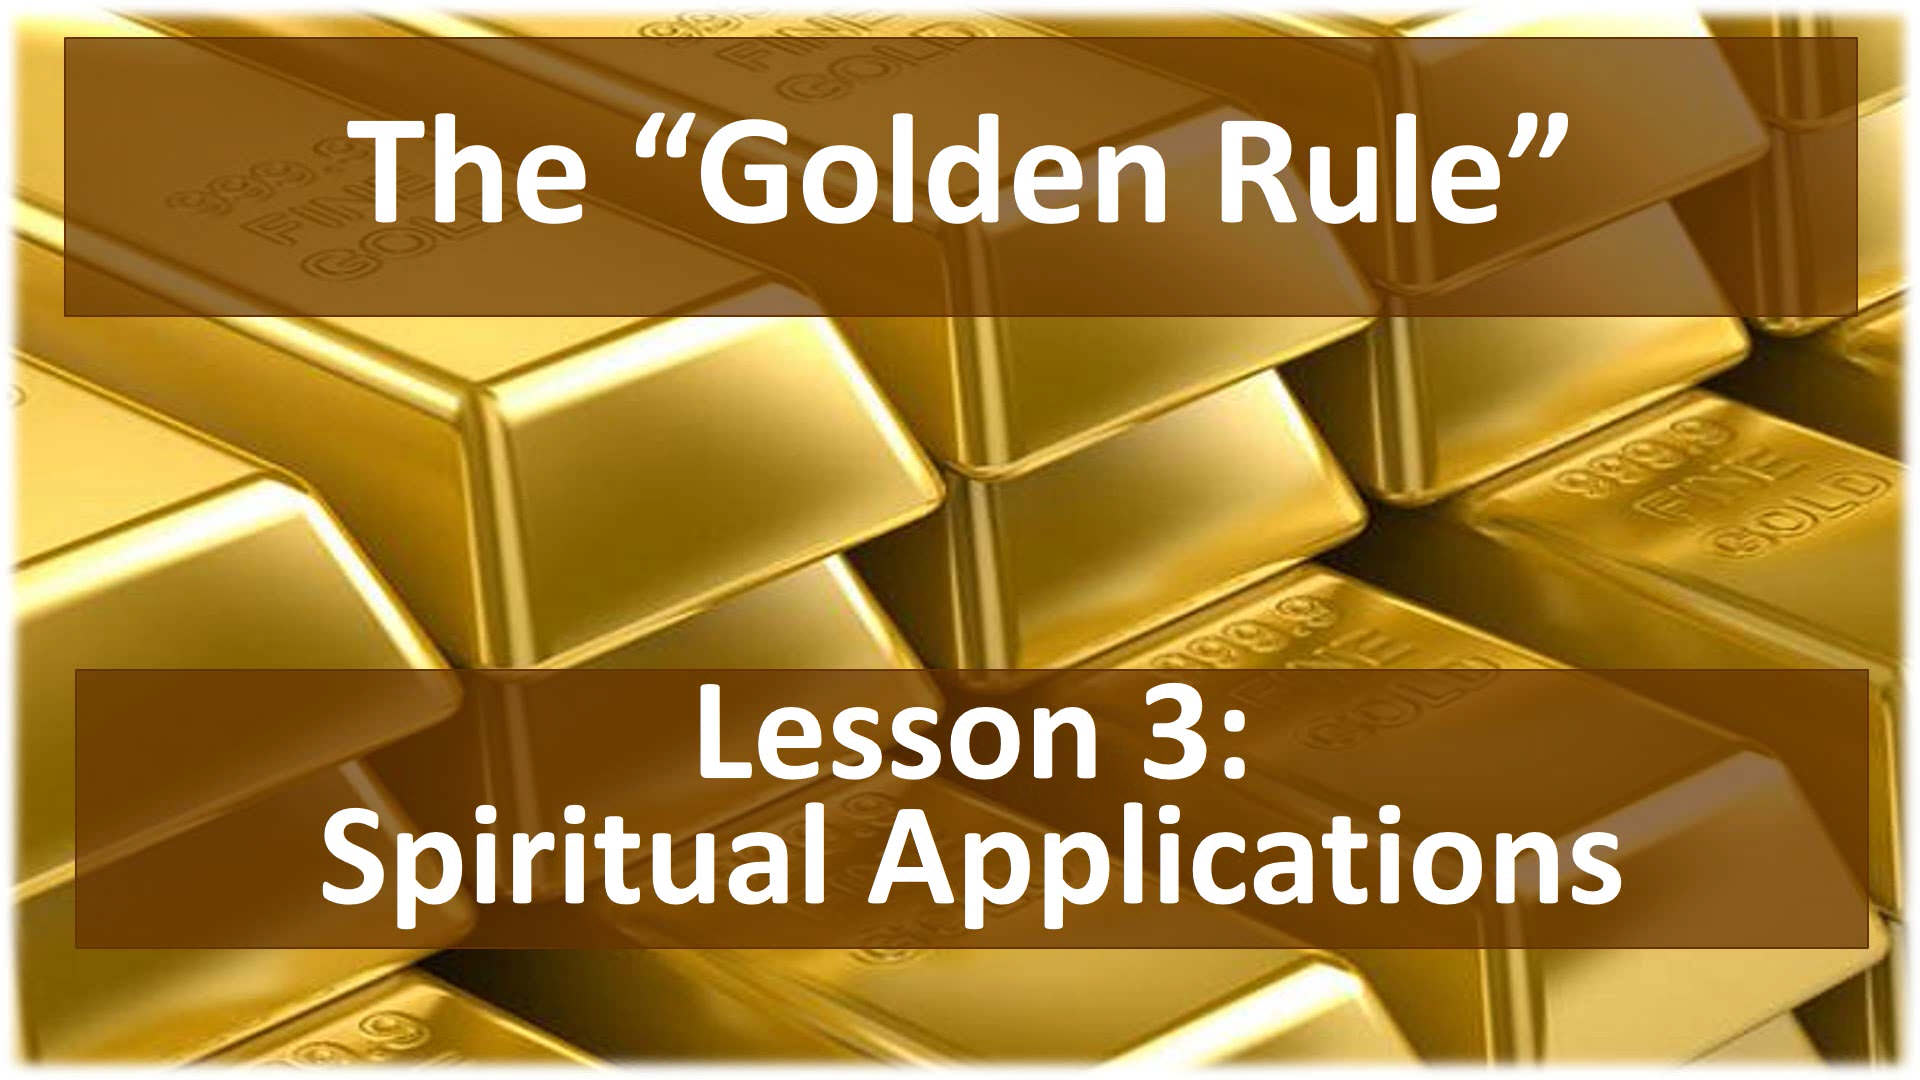 The Golden Rule (Lesson 3: Spiritual Applications)